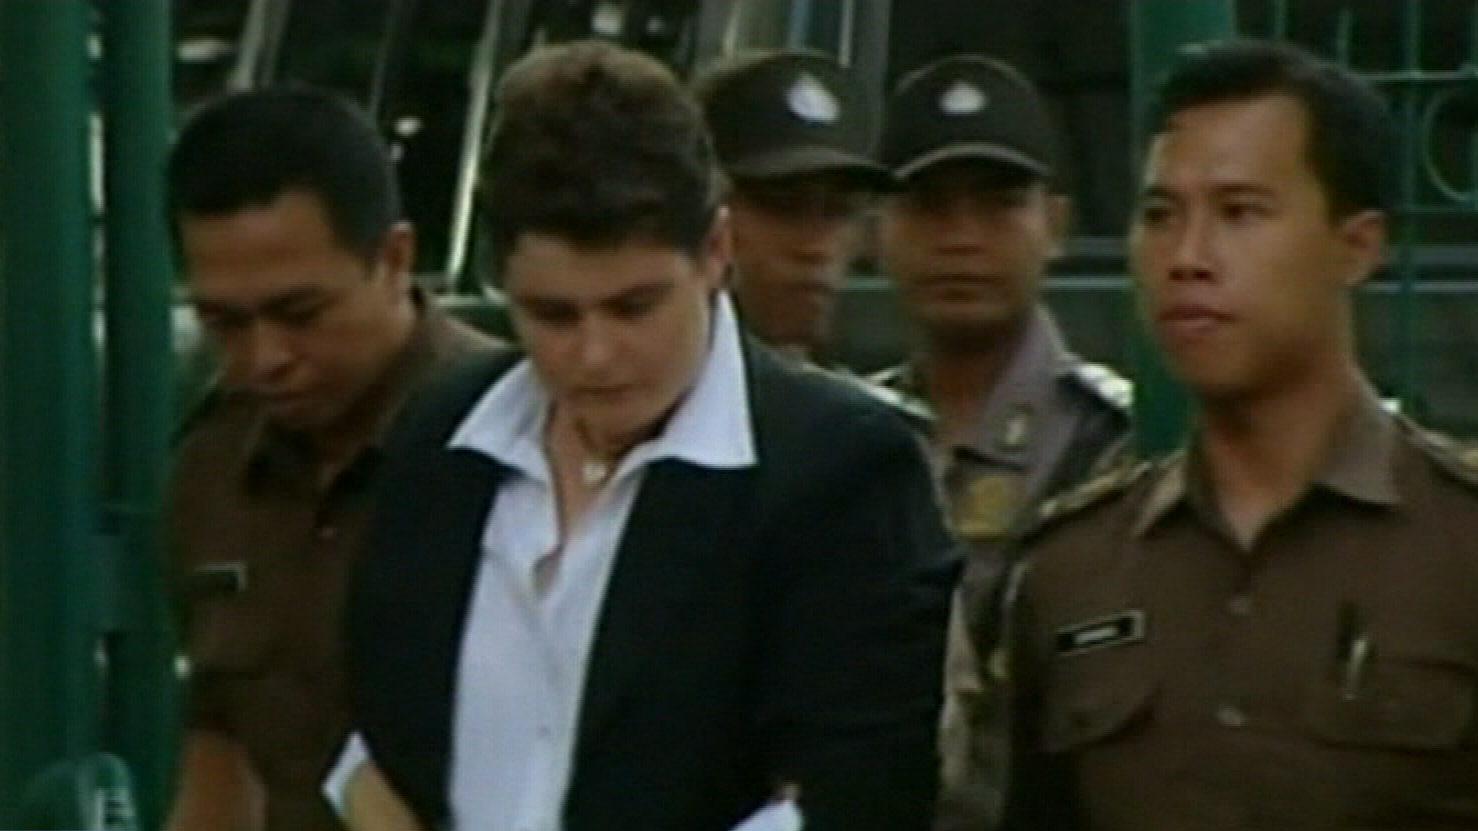 Bali Nine member to be released from jail